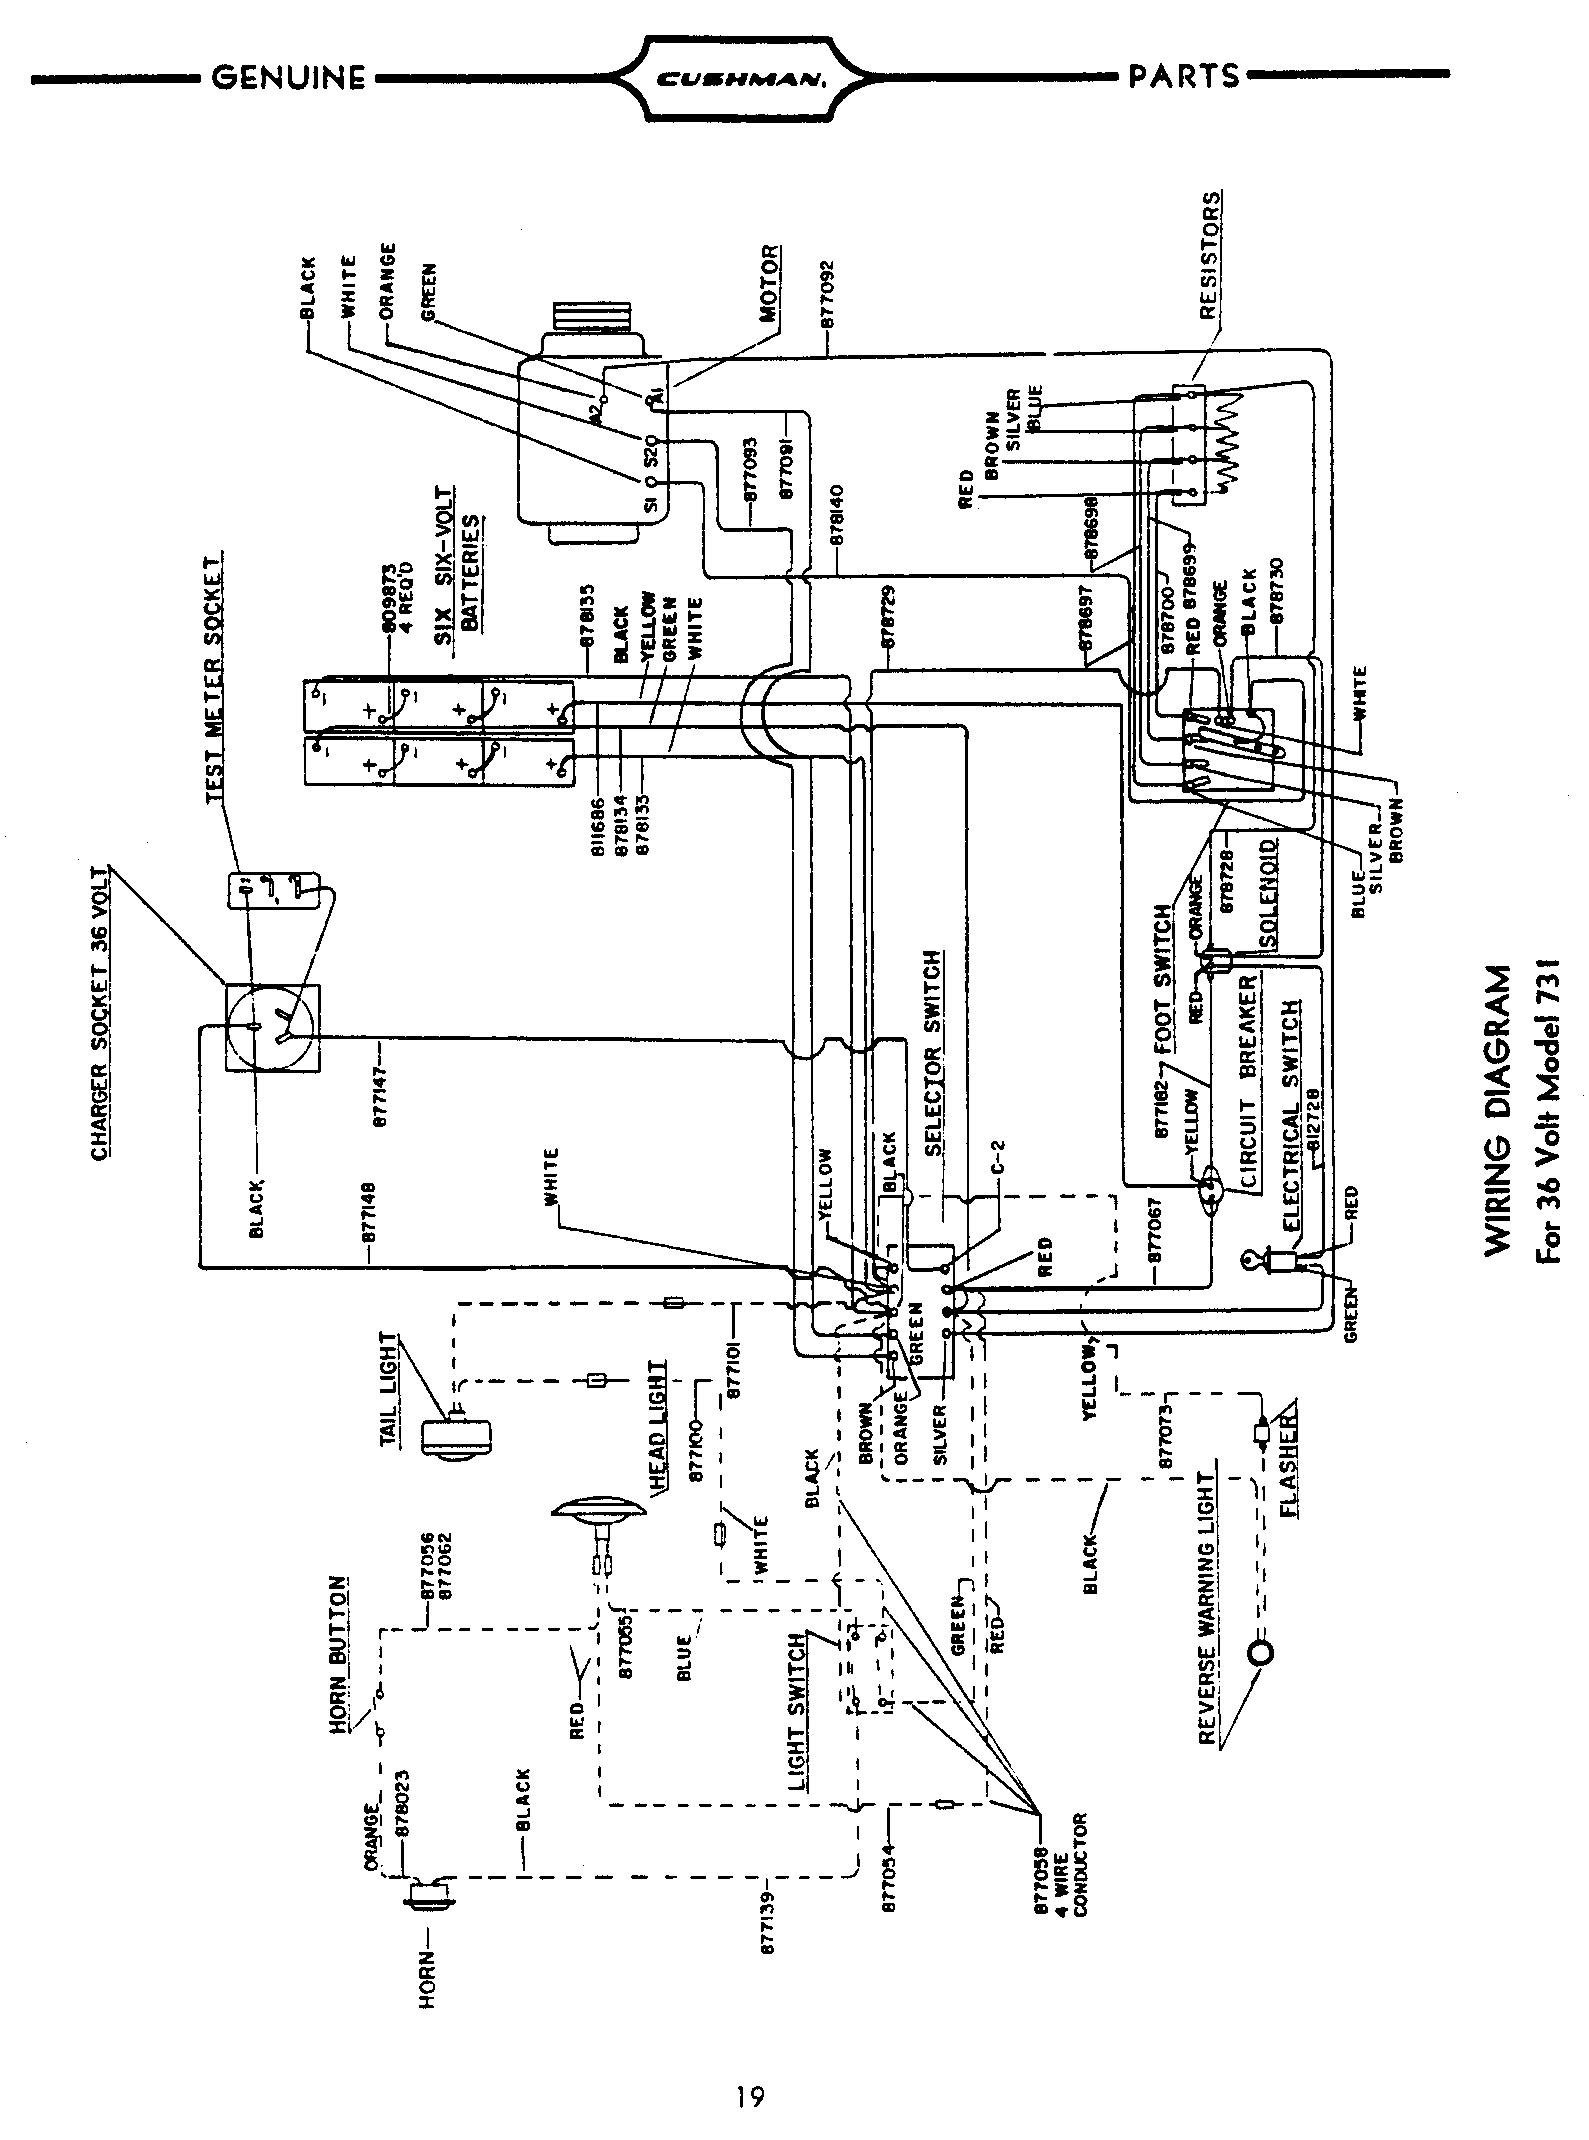 Car Ignition Diagram wiring data